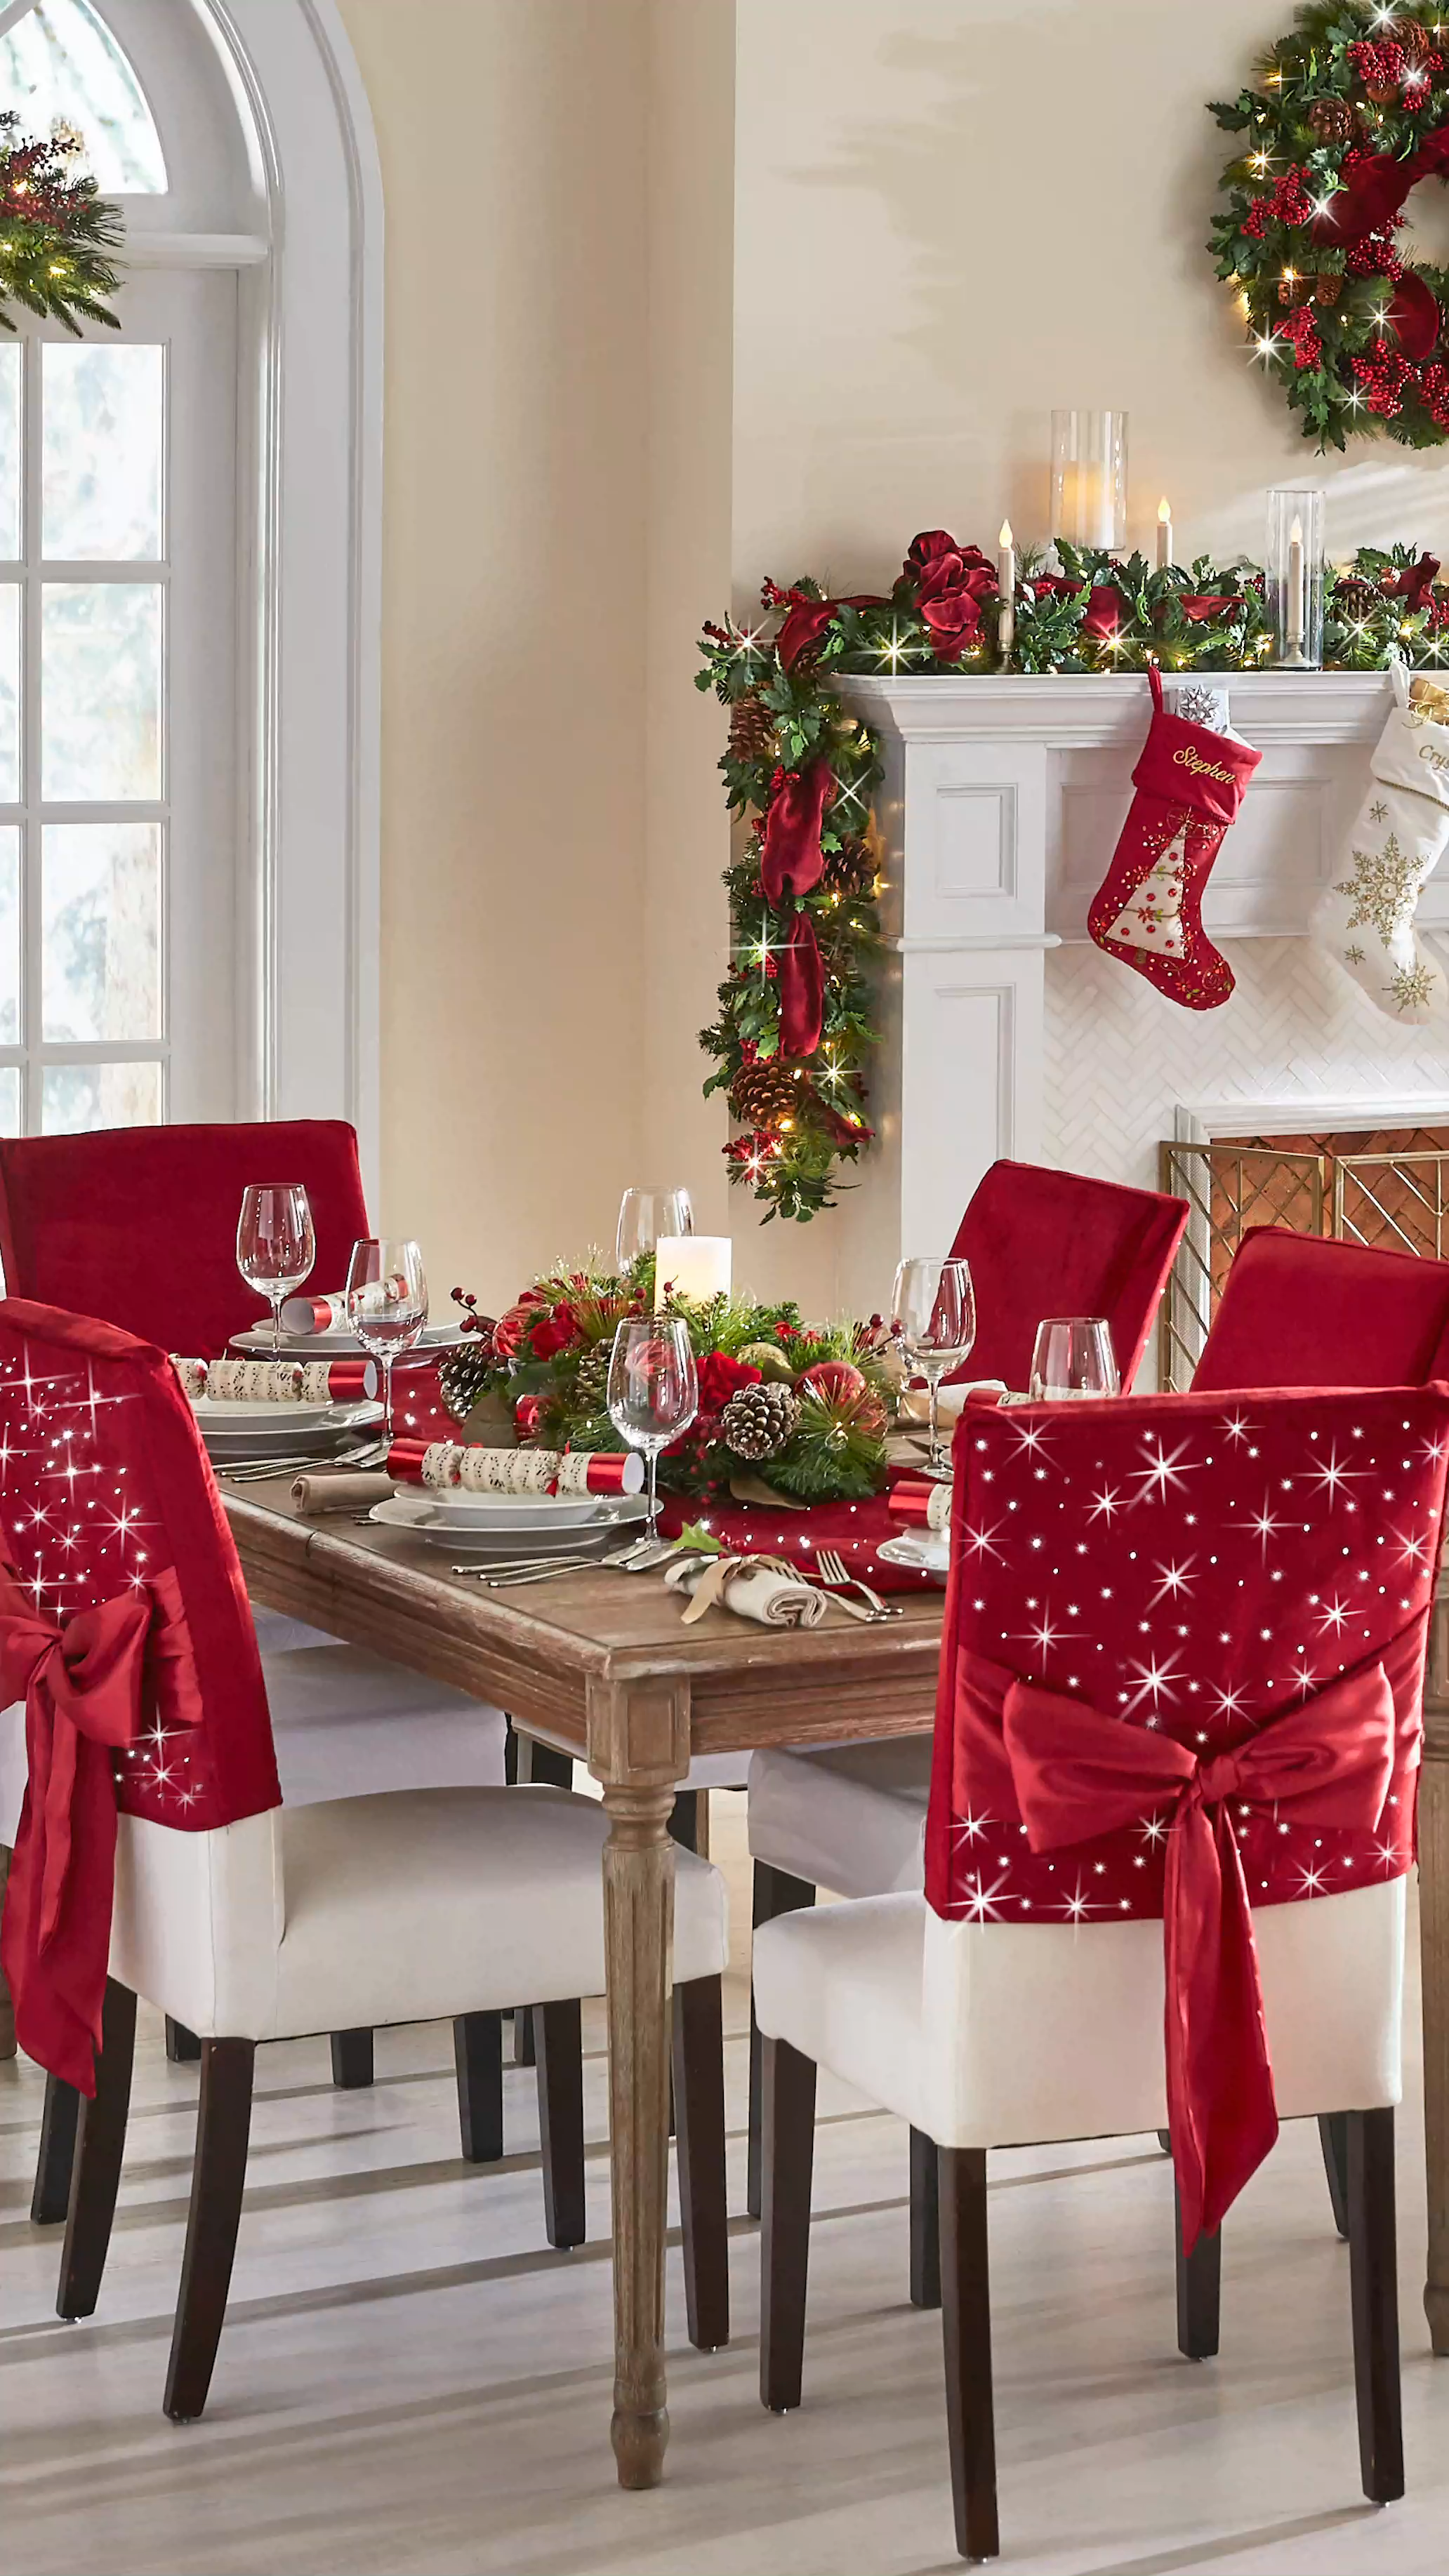 Hammacher Schlemmer Your Source For Unique Seasonal Decor Video Christmas Decorations Holiday Decor Outdoor Christmas Decorations